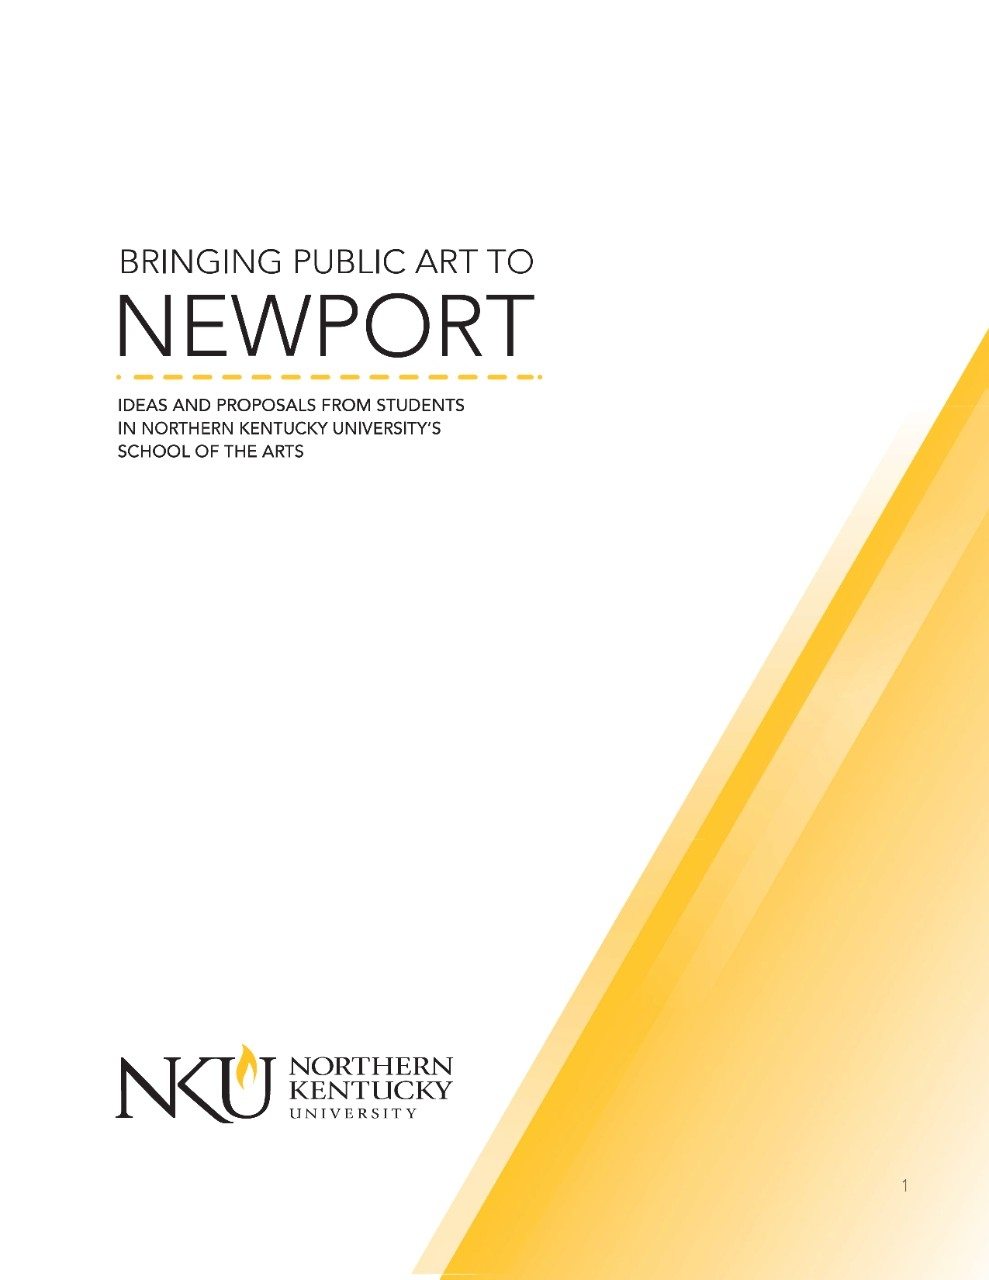 Bringing Public Art to Newport by Northern Kentucky University